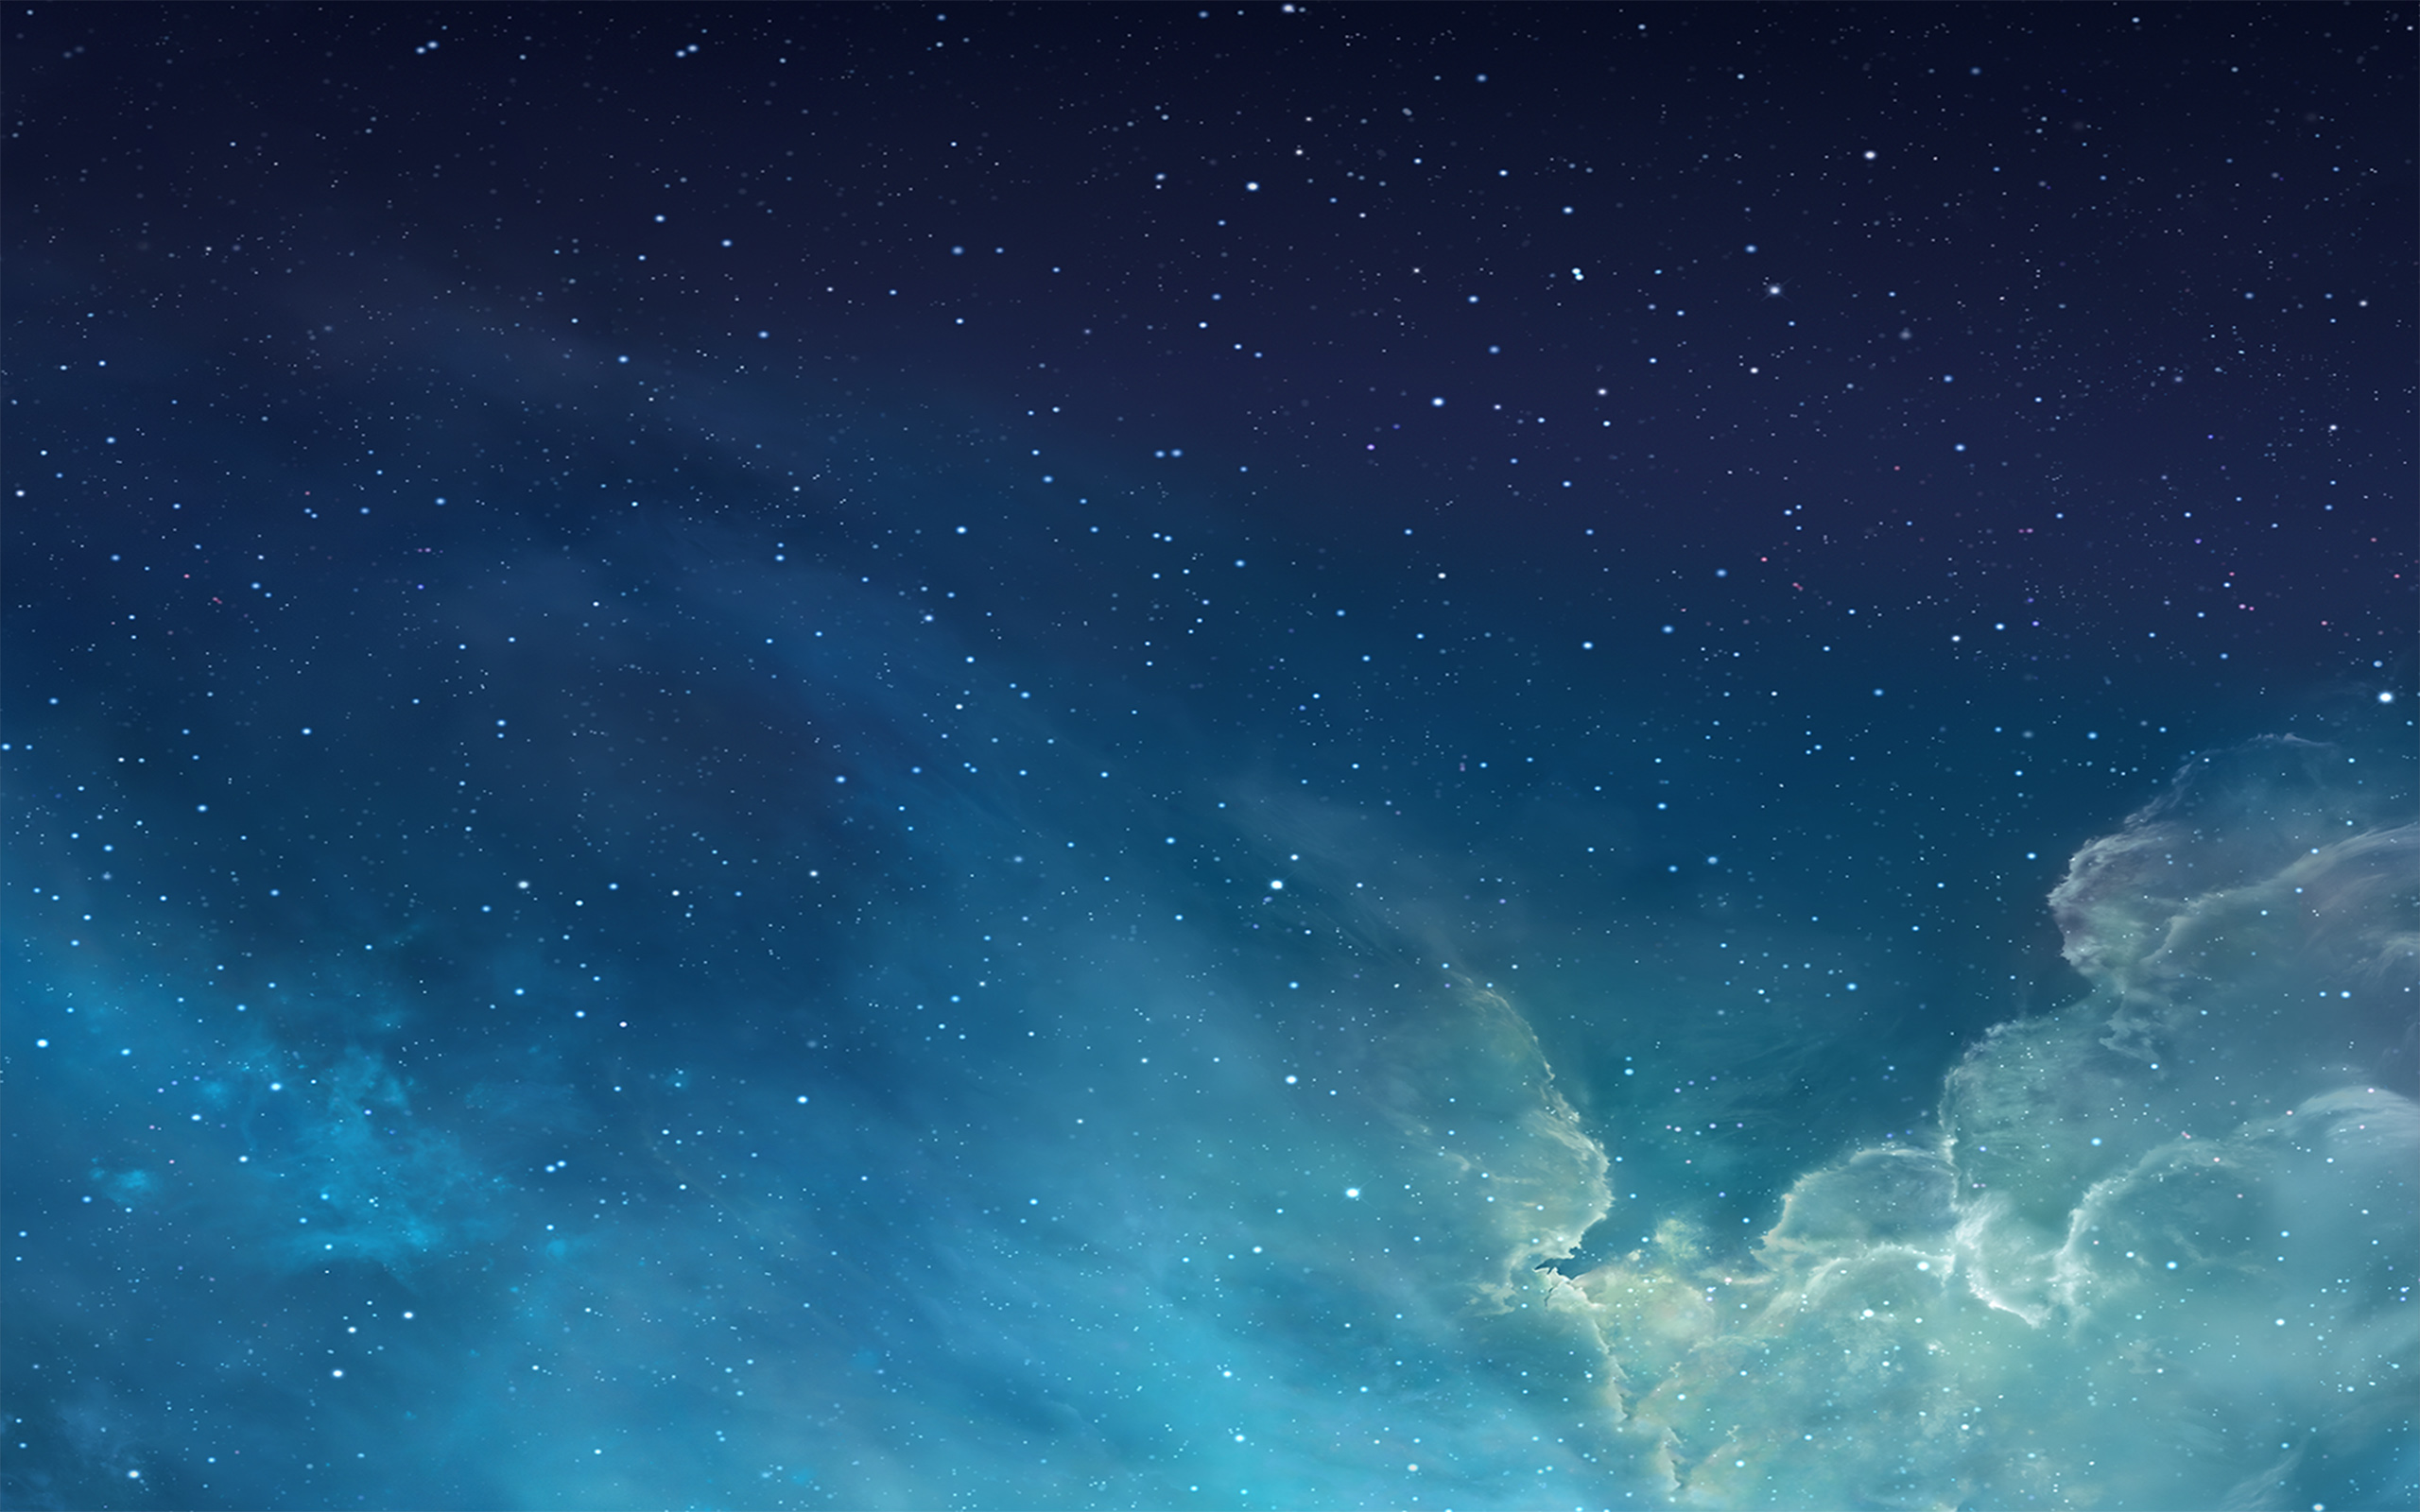 IOS Background